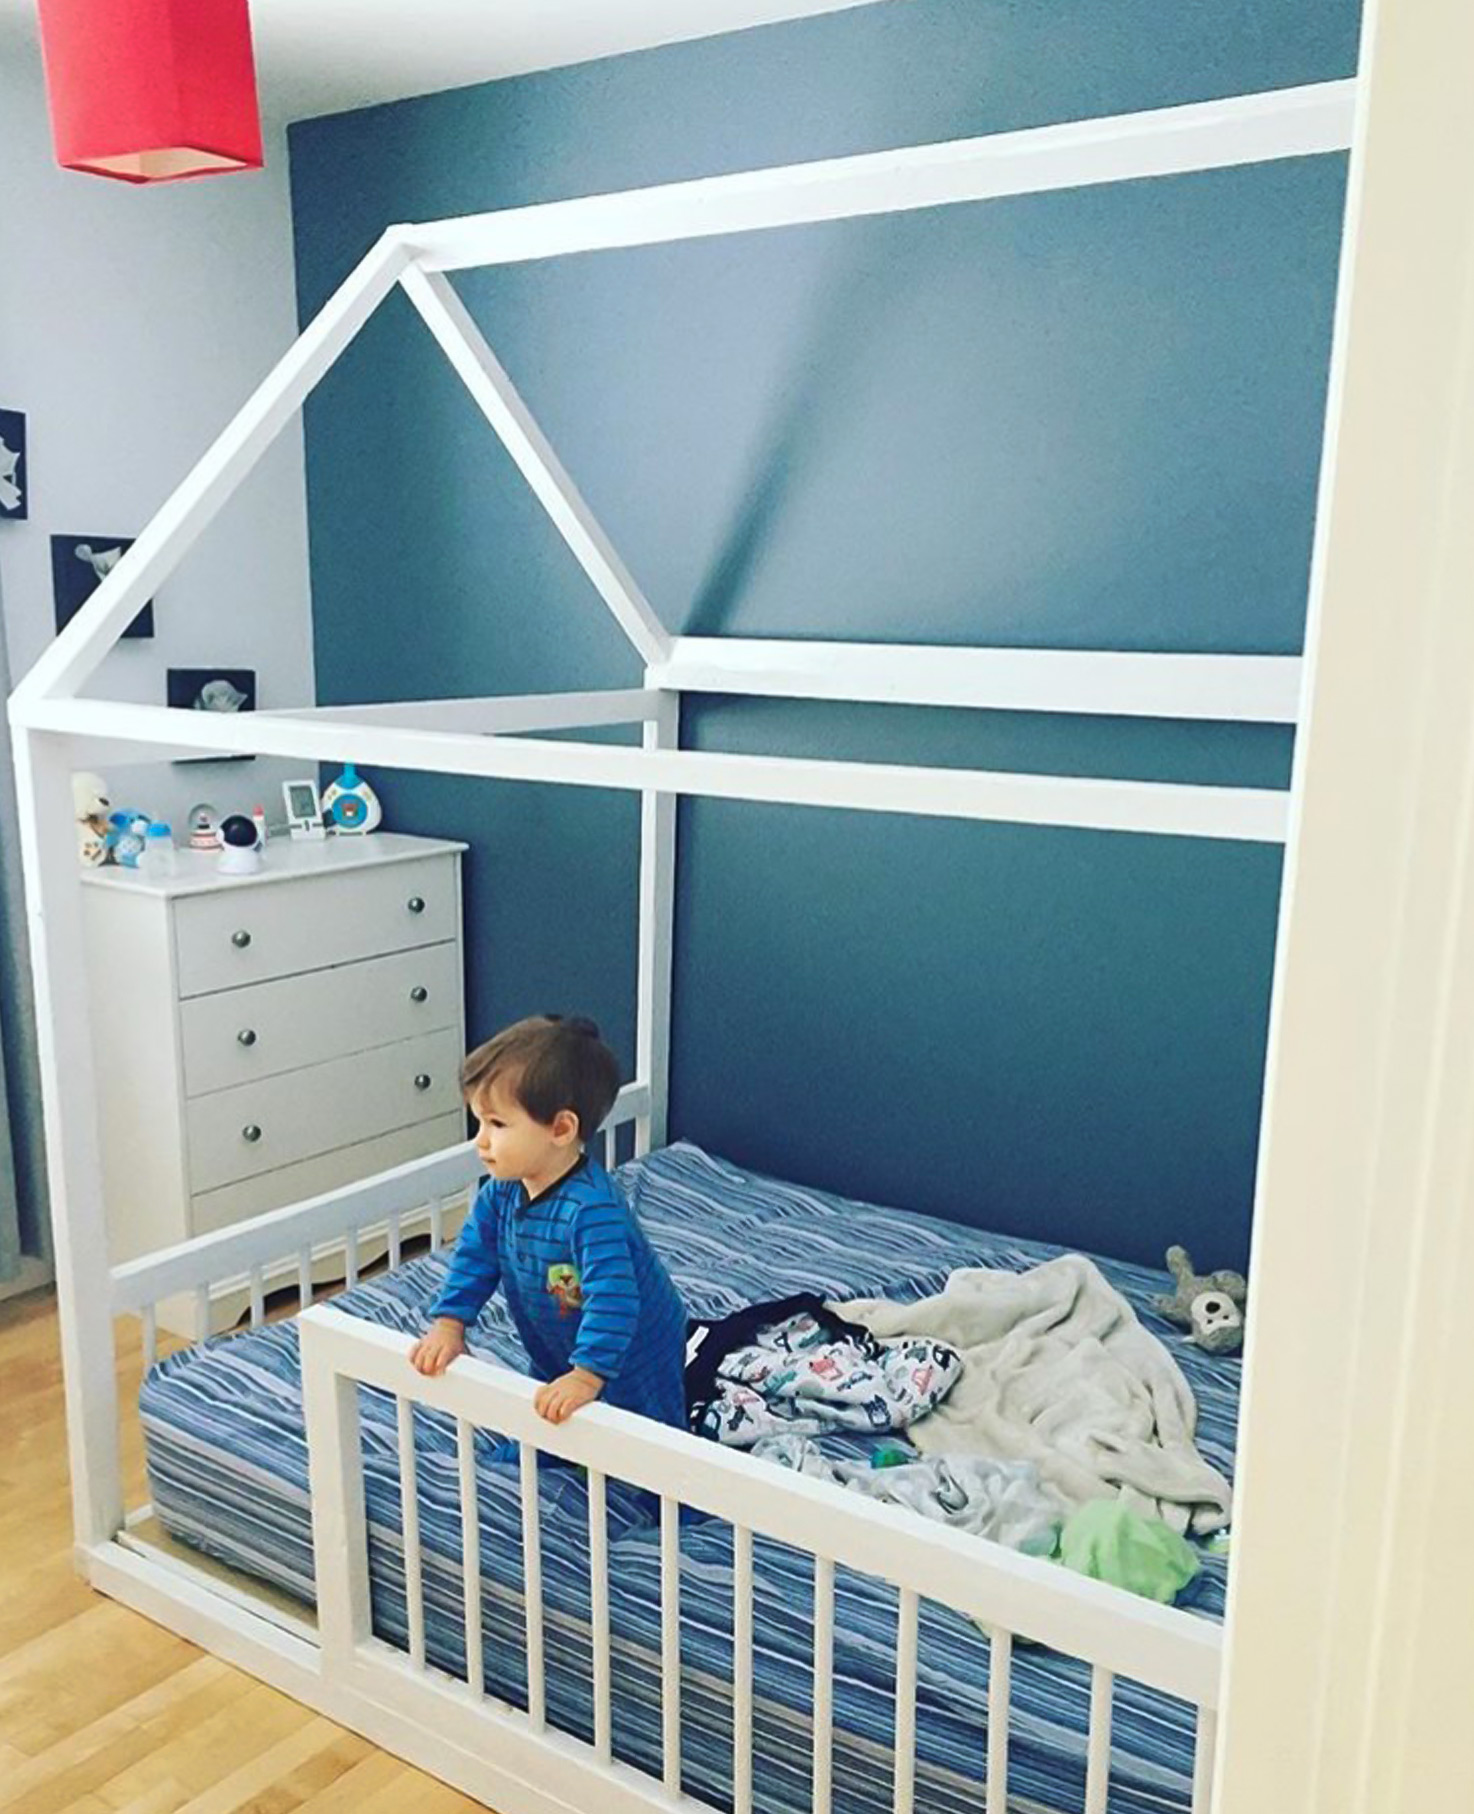 Plus, I Thought It Was A Good Change For Teo , In The Sense That He Would  Go From Crib To The Montessori Bed, To His « Big Boy Bed » Later On.